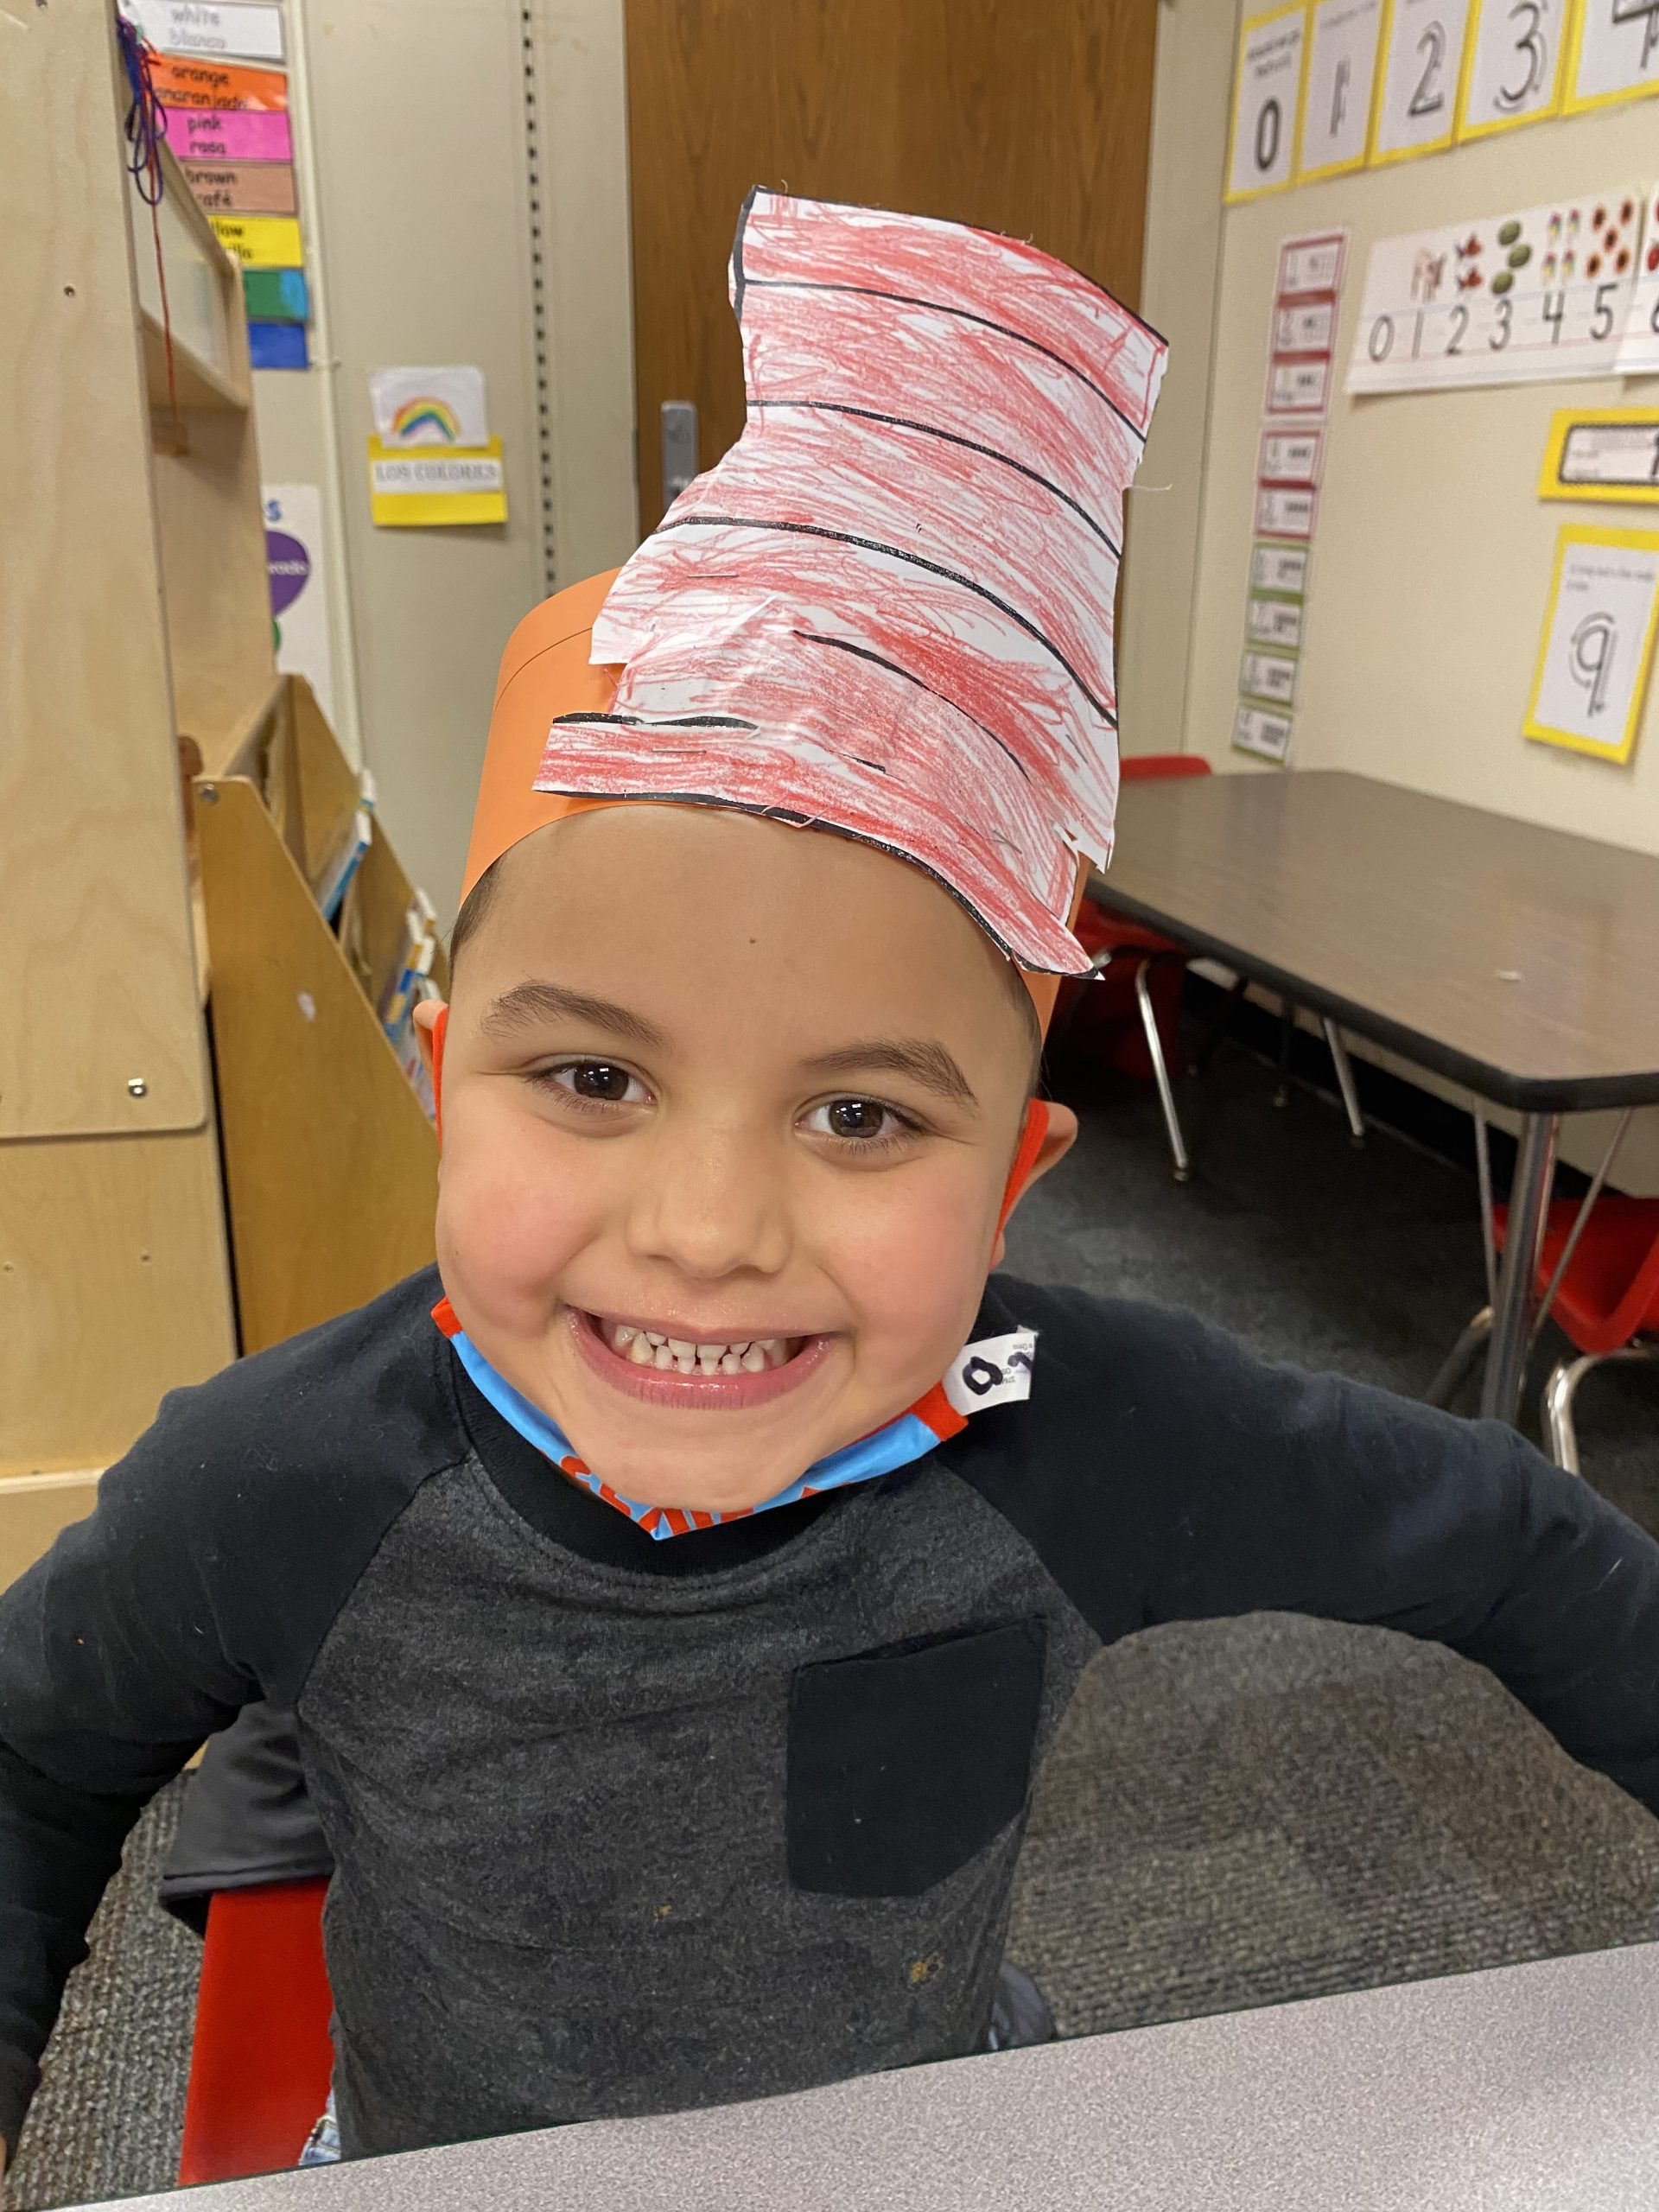 smiling young boy wearing a handmade Dr. Suess hat